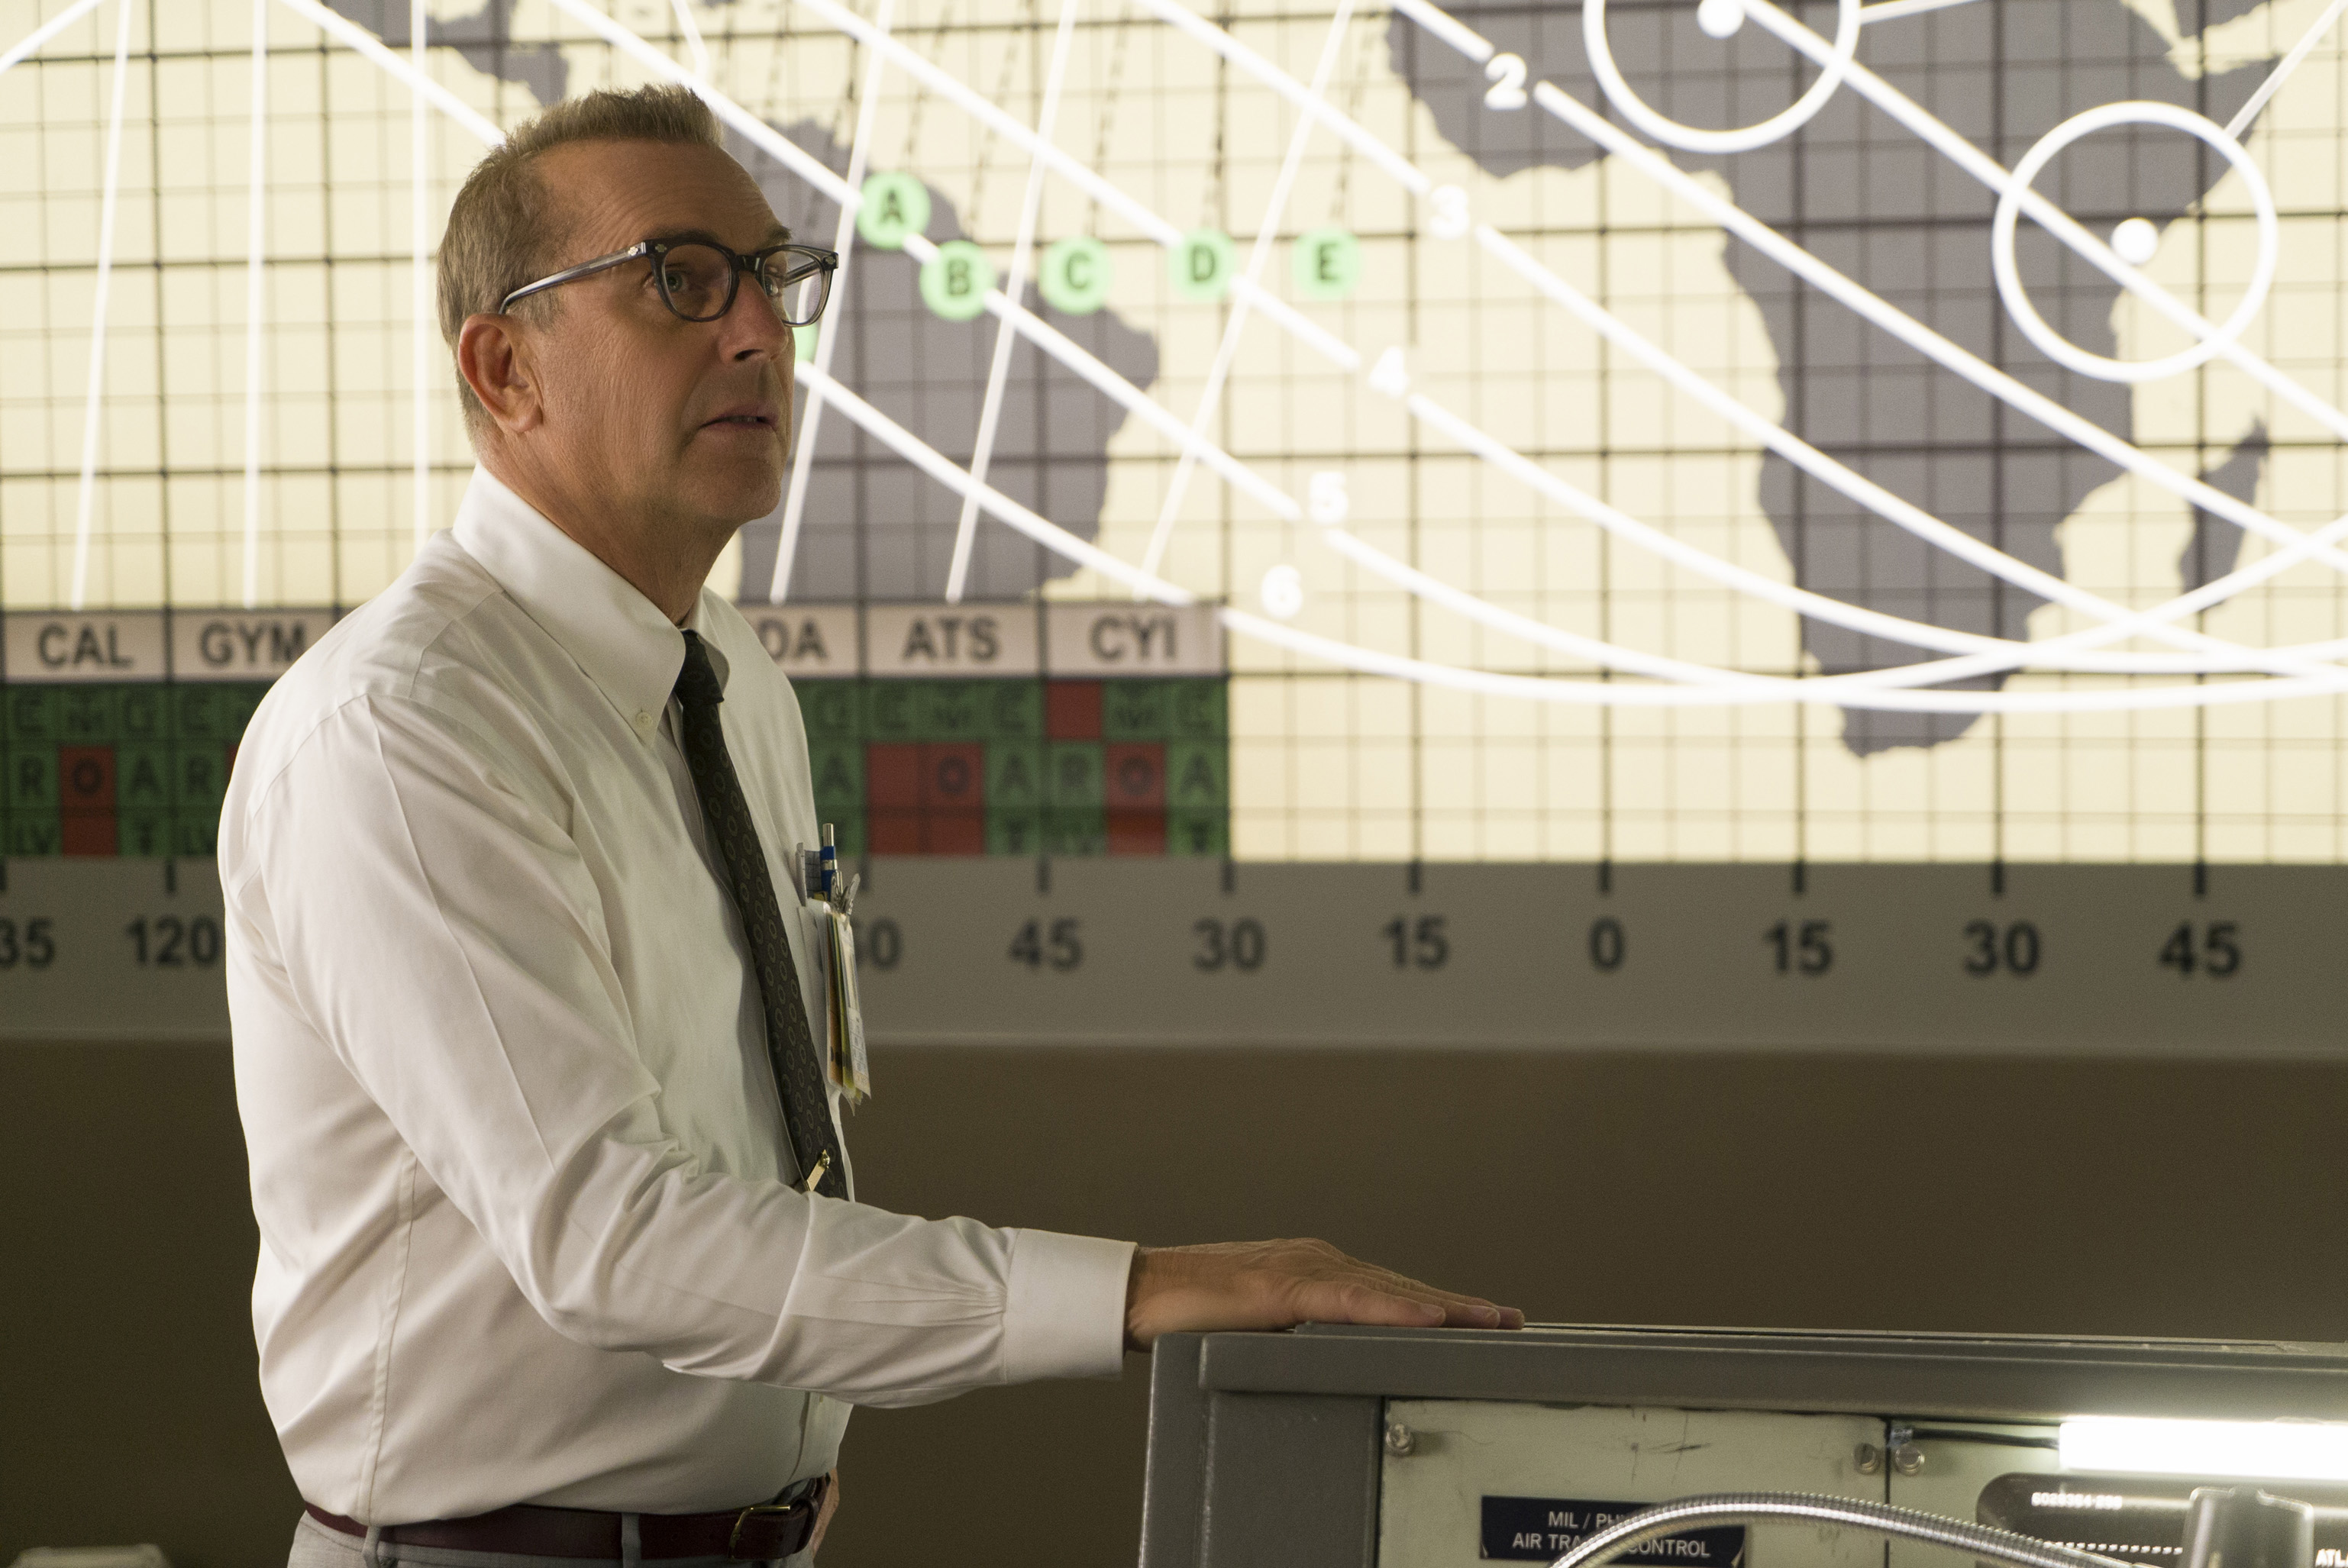 DF-06401_R - Kevin Costner stars as NASA official Al Harrison, in HIDDEN FIGURES. Photo Credit: Hopper Stone.